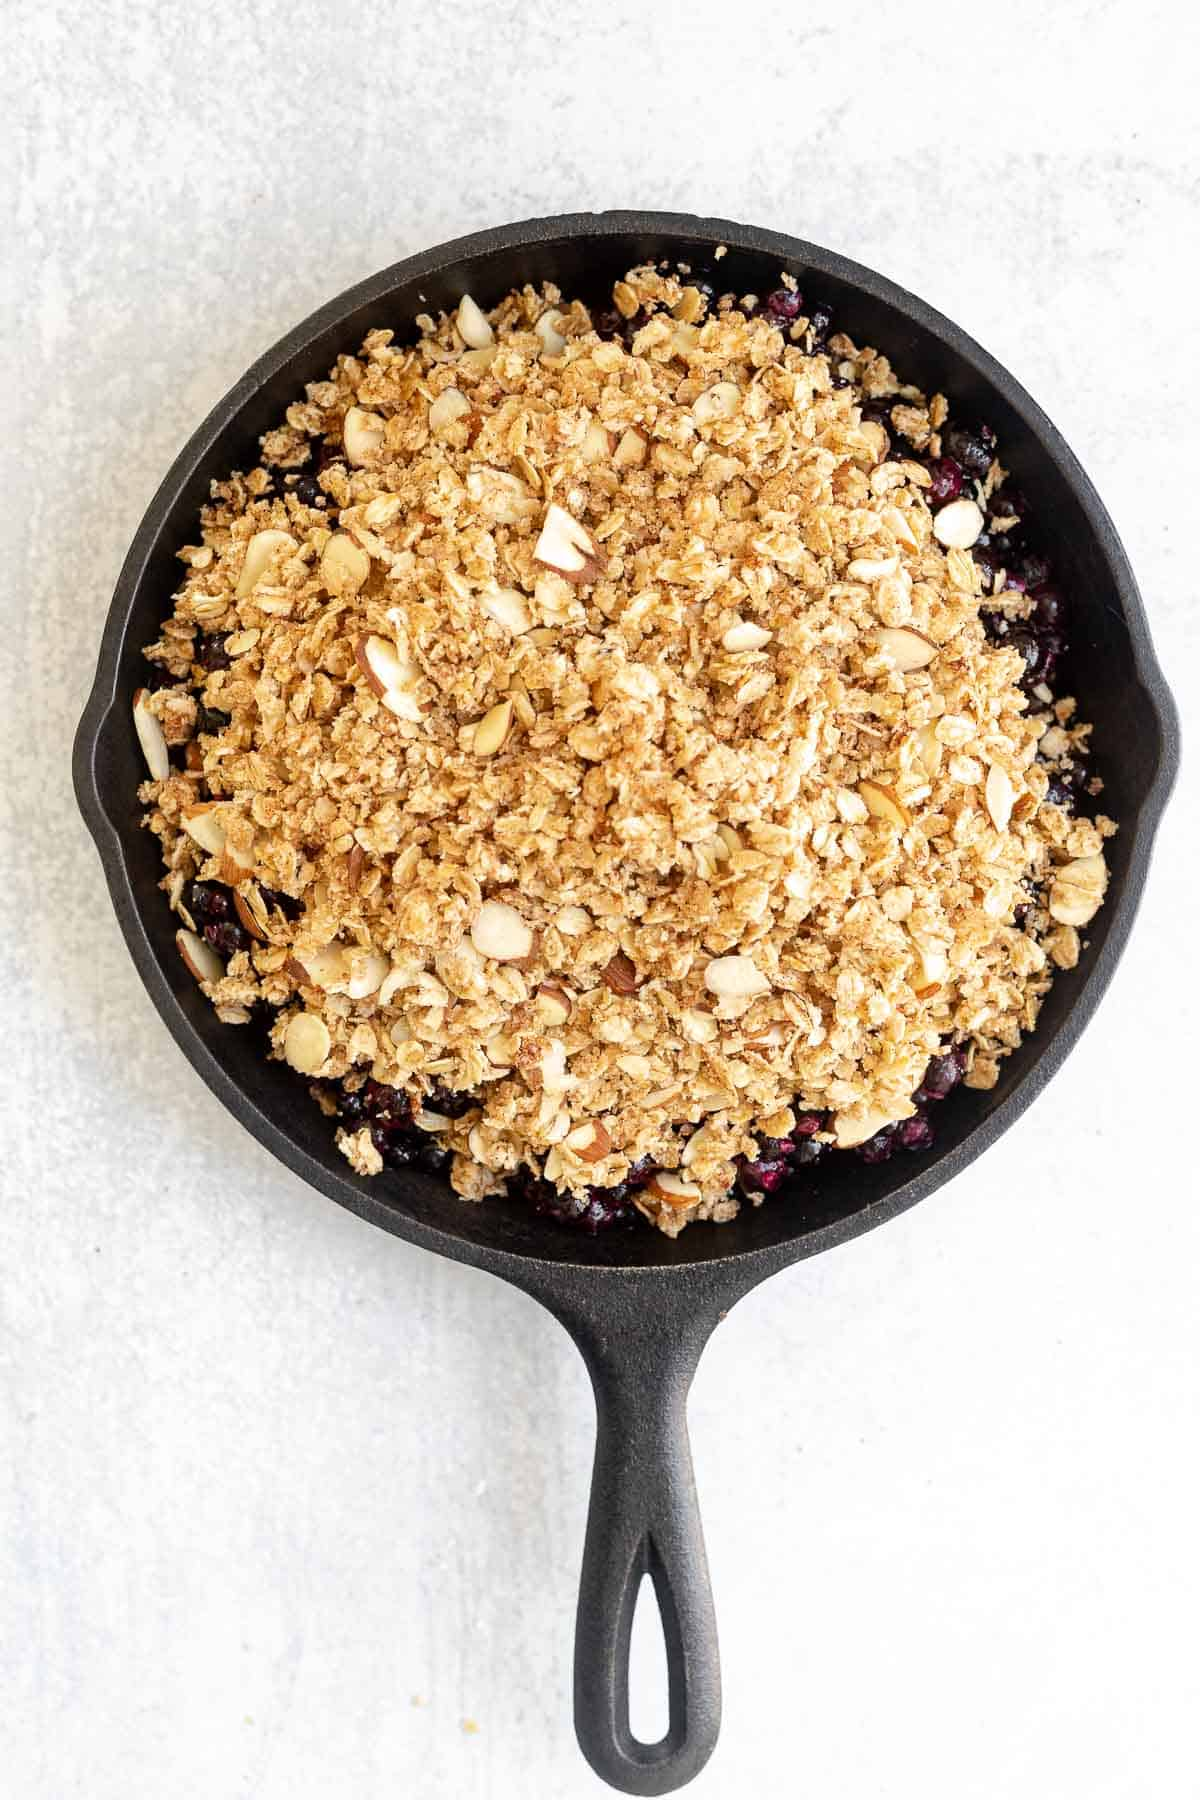 blueberry crisp with the crumble topping before baking